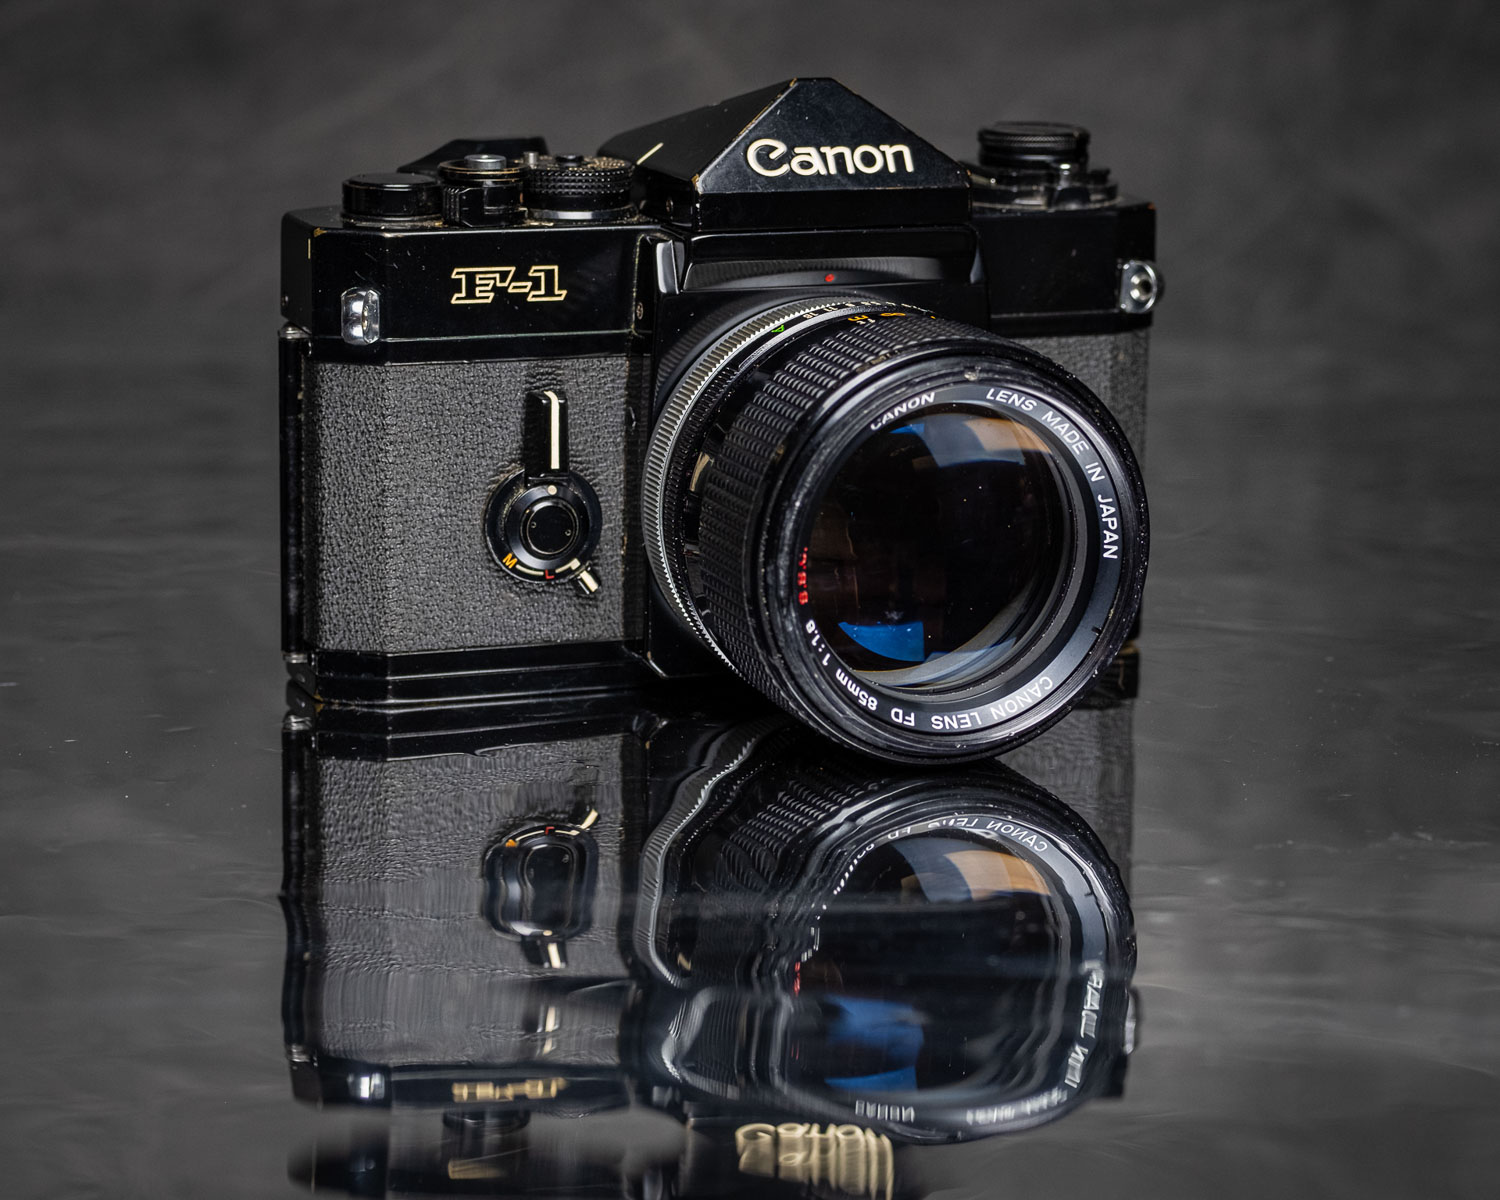 The first pro level SLR I bought new In 1976 - Canon F-1